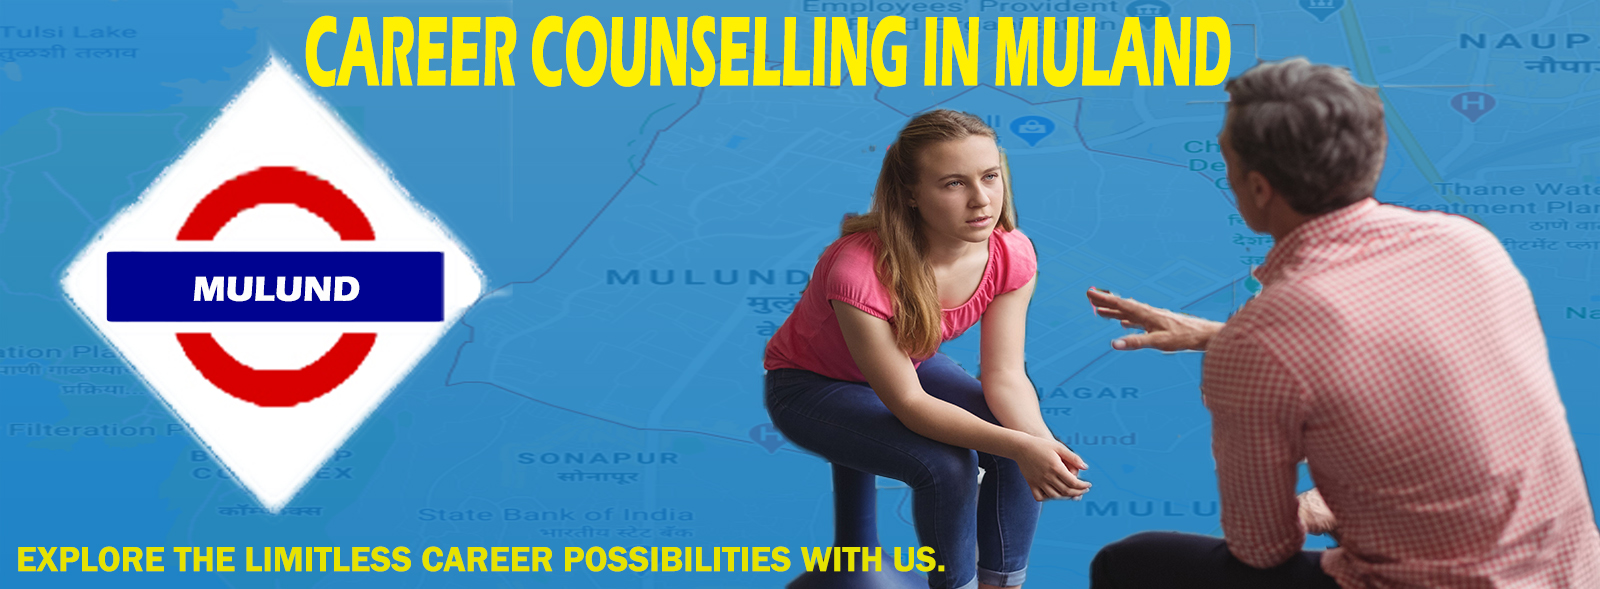 career counselling in mulund